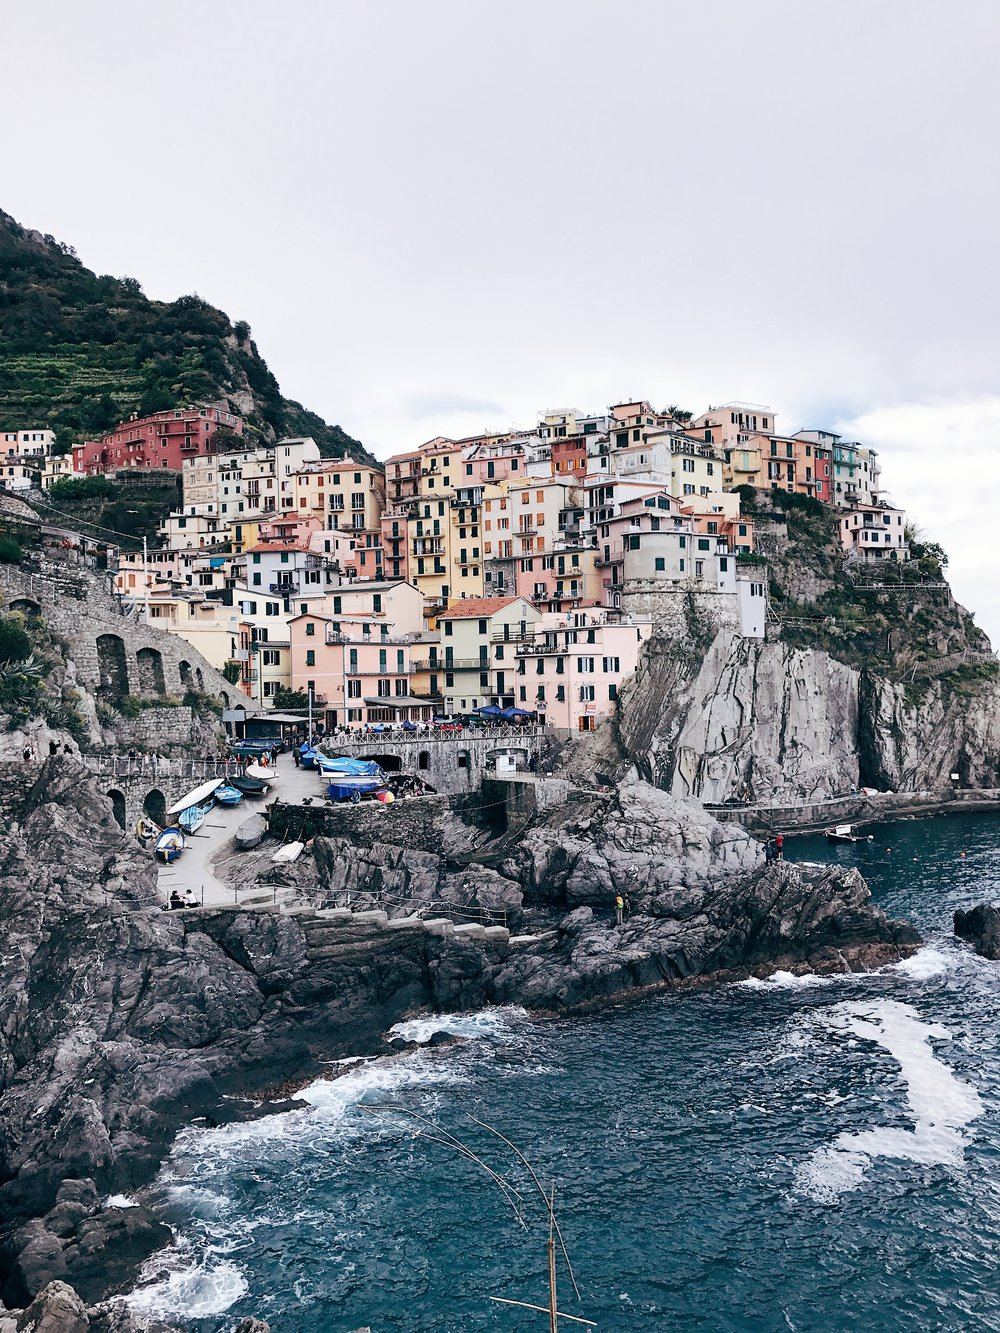 Image: Where to Travel in 2018 - Cinque Terre - Manarola